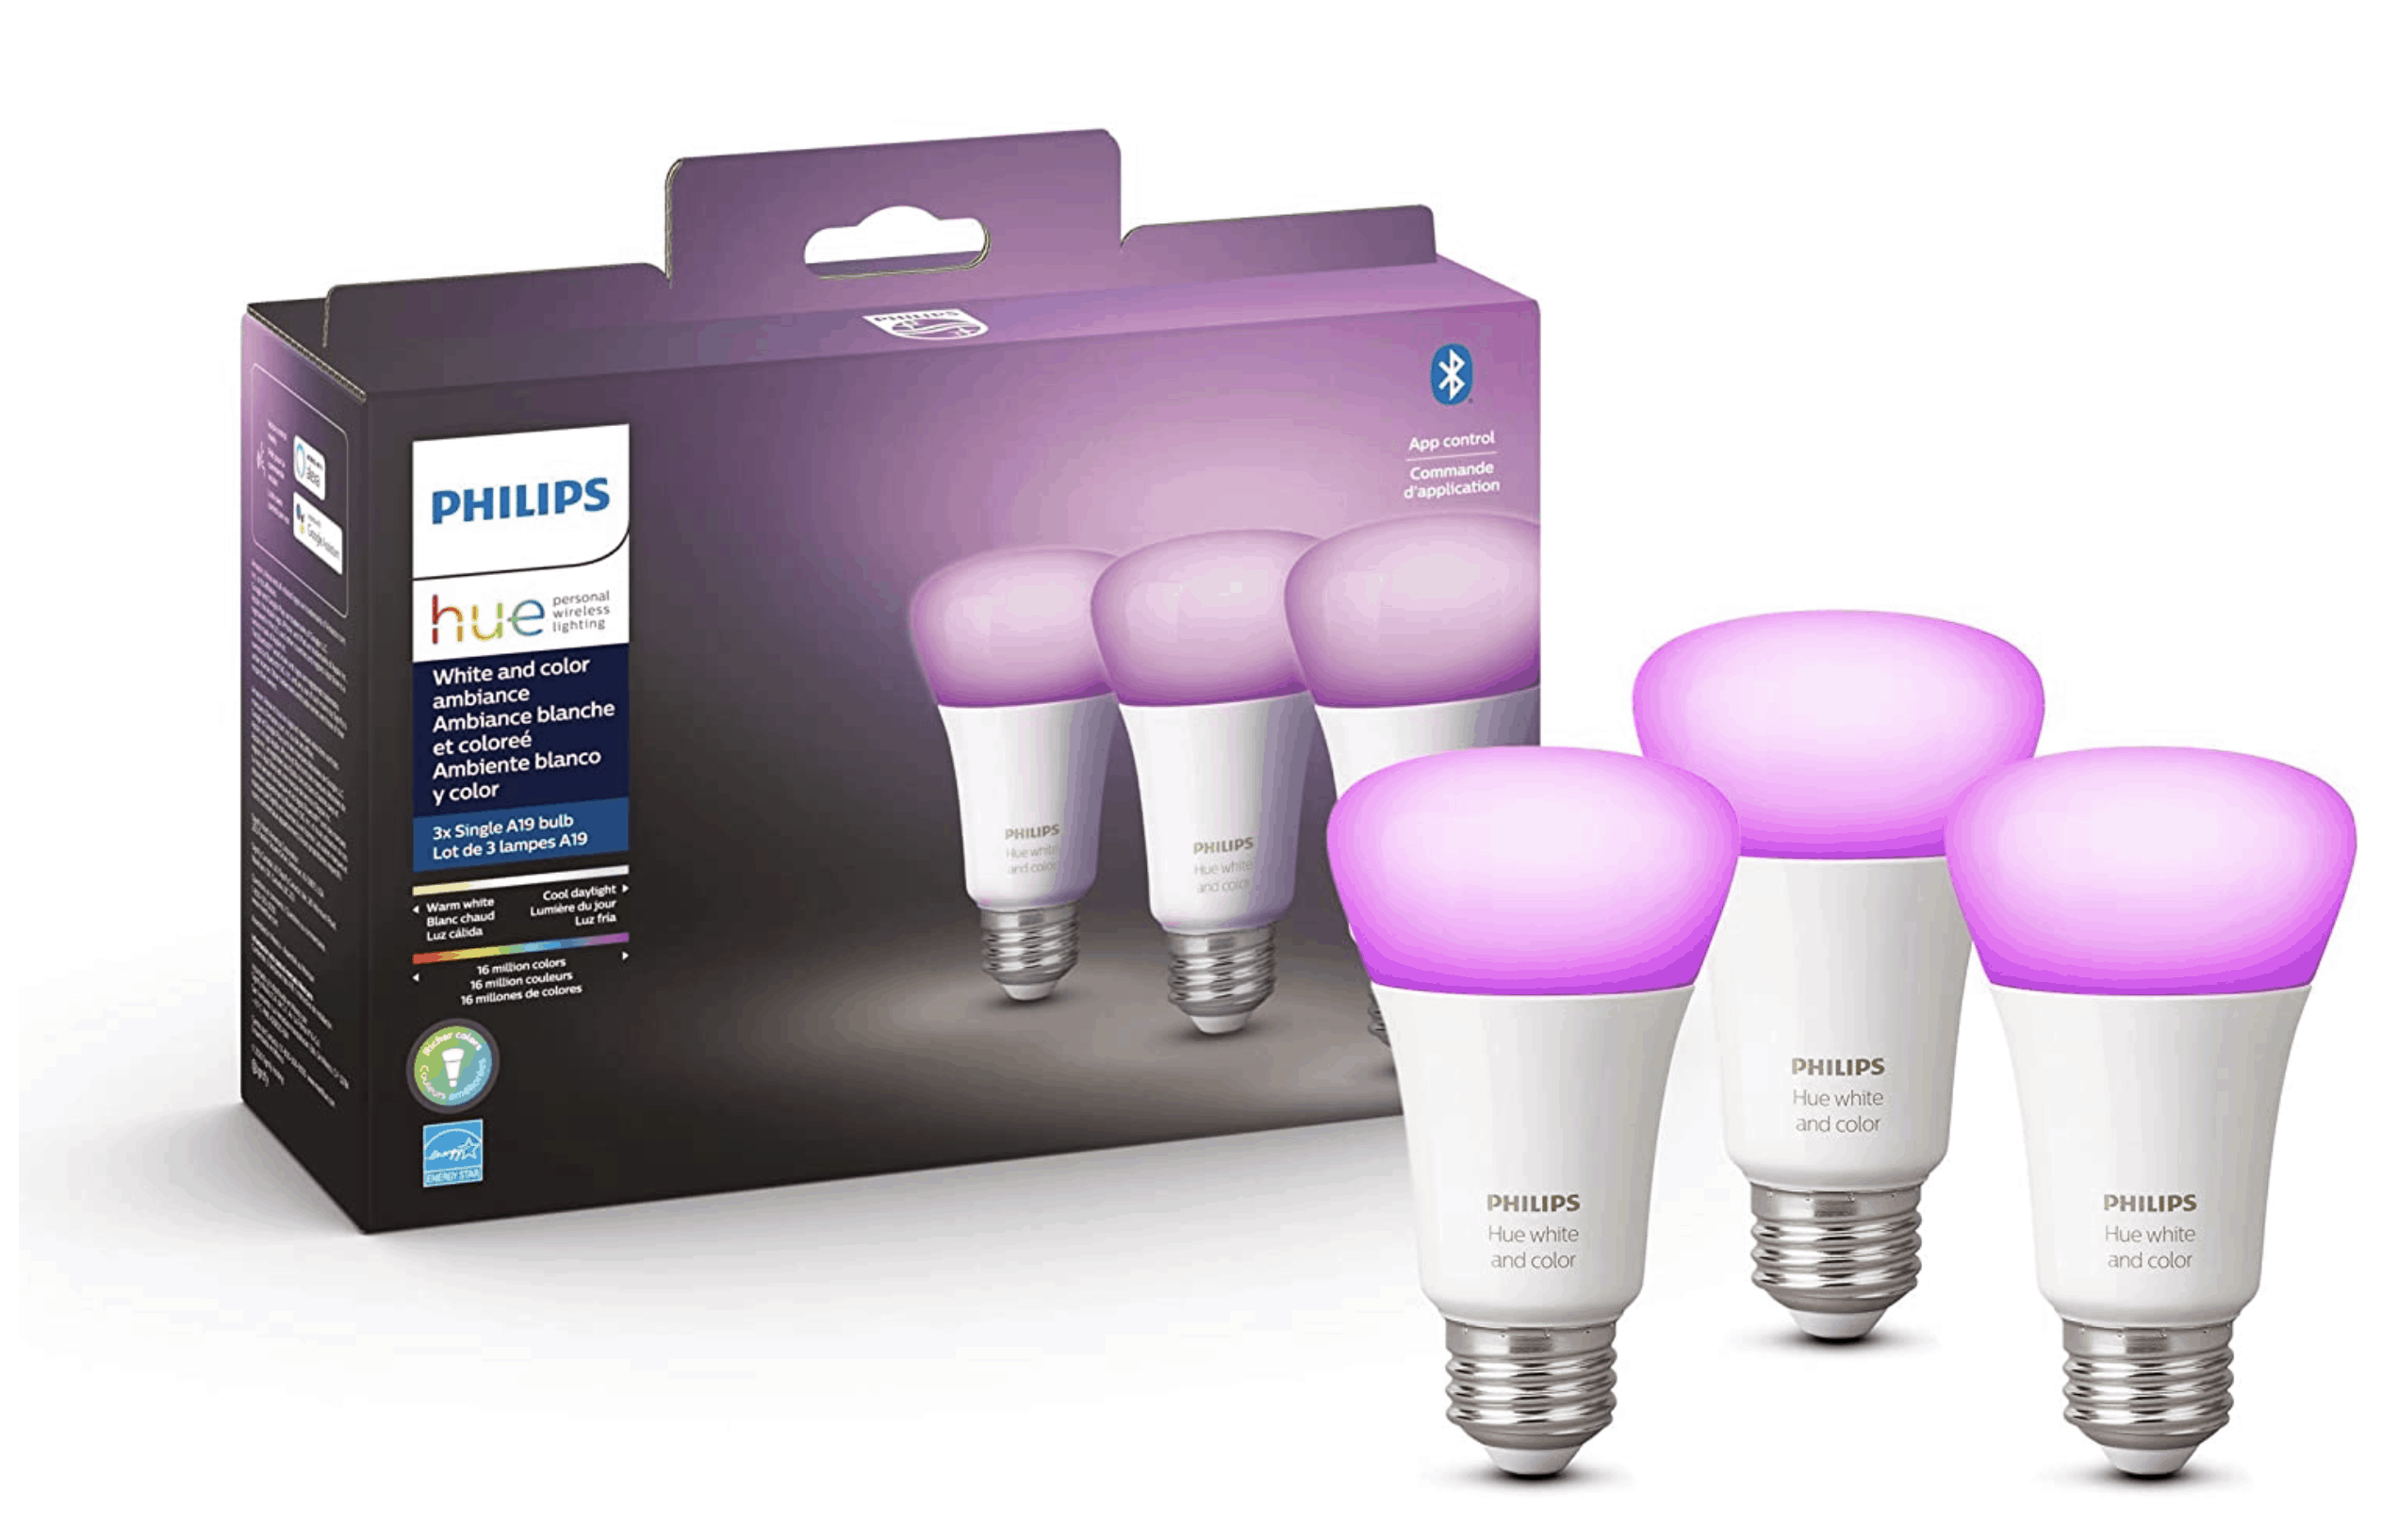 Philips Hue White Color Ambiance 3 Pack Bulbs For 99 Early Black Friday Deals